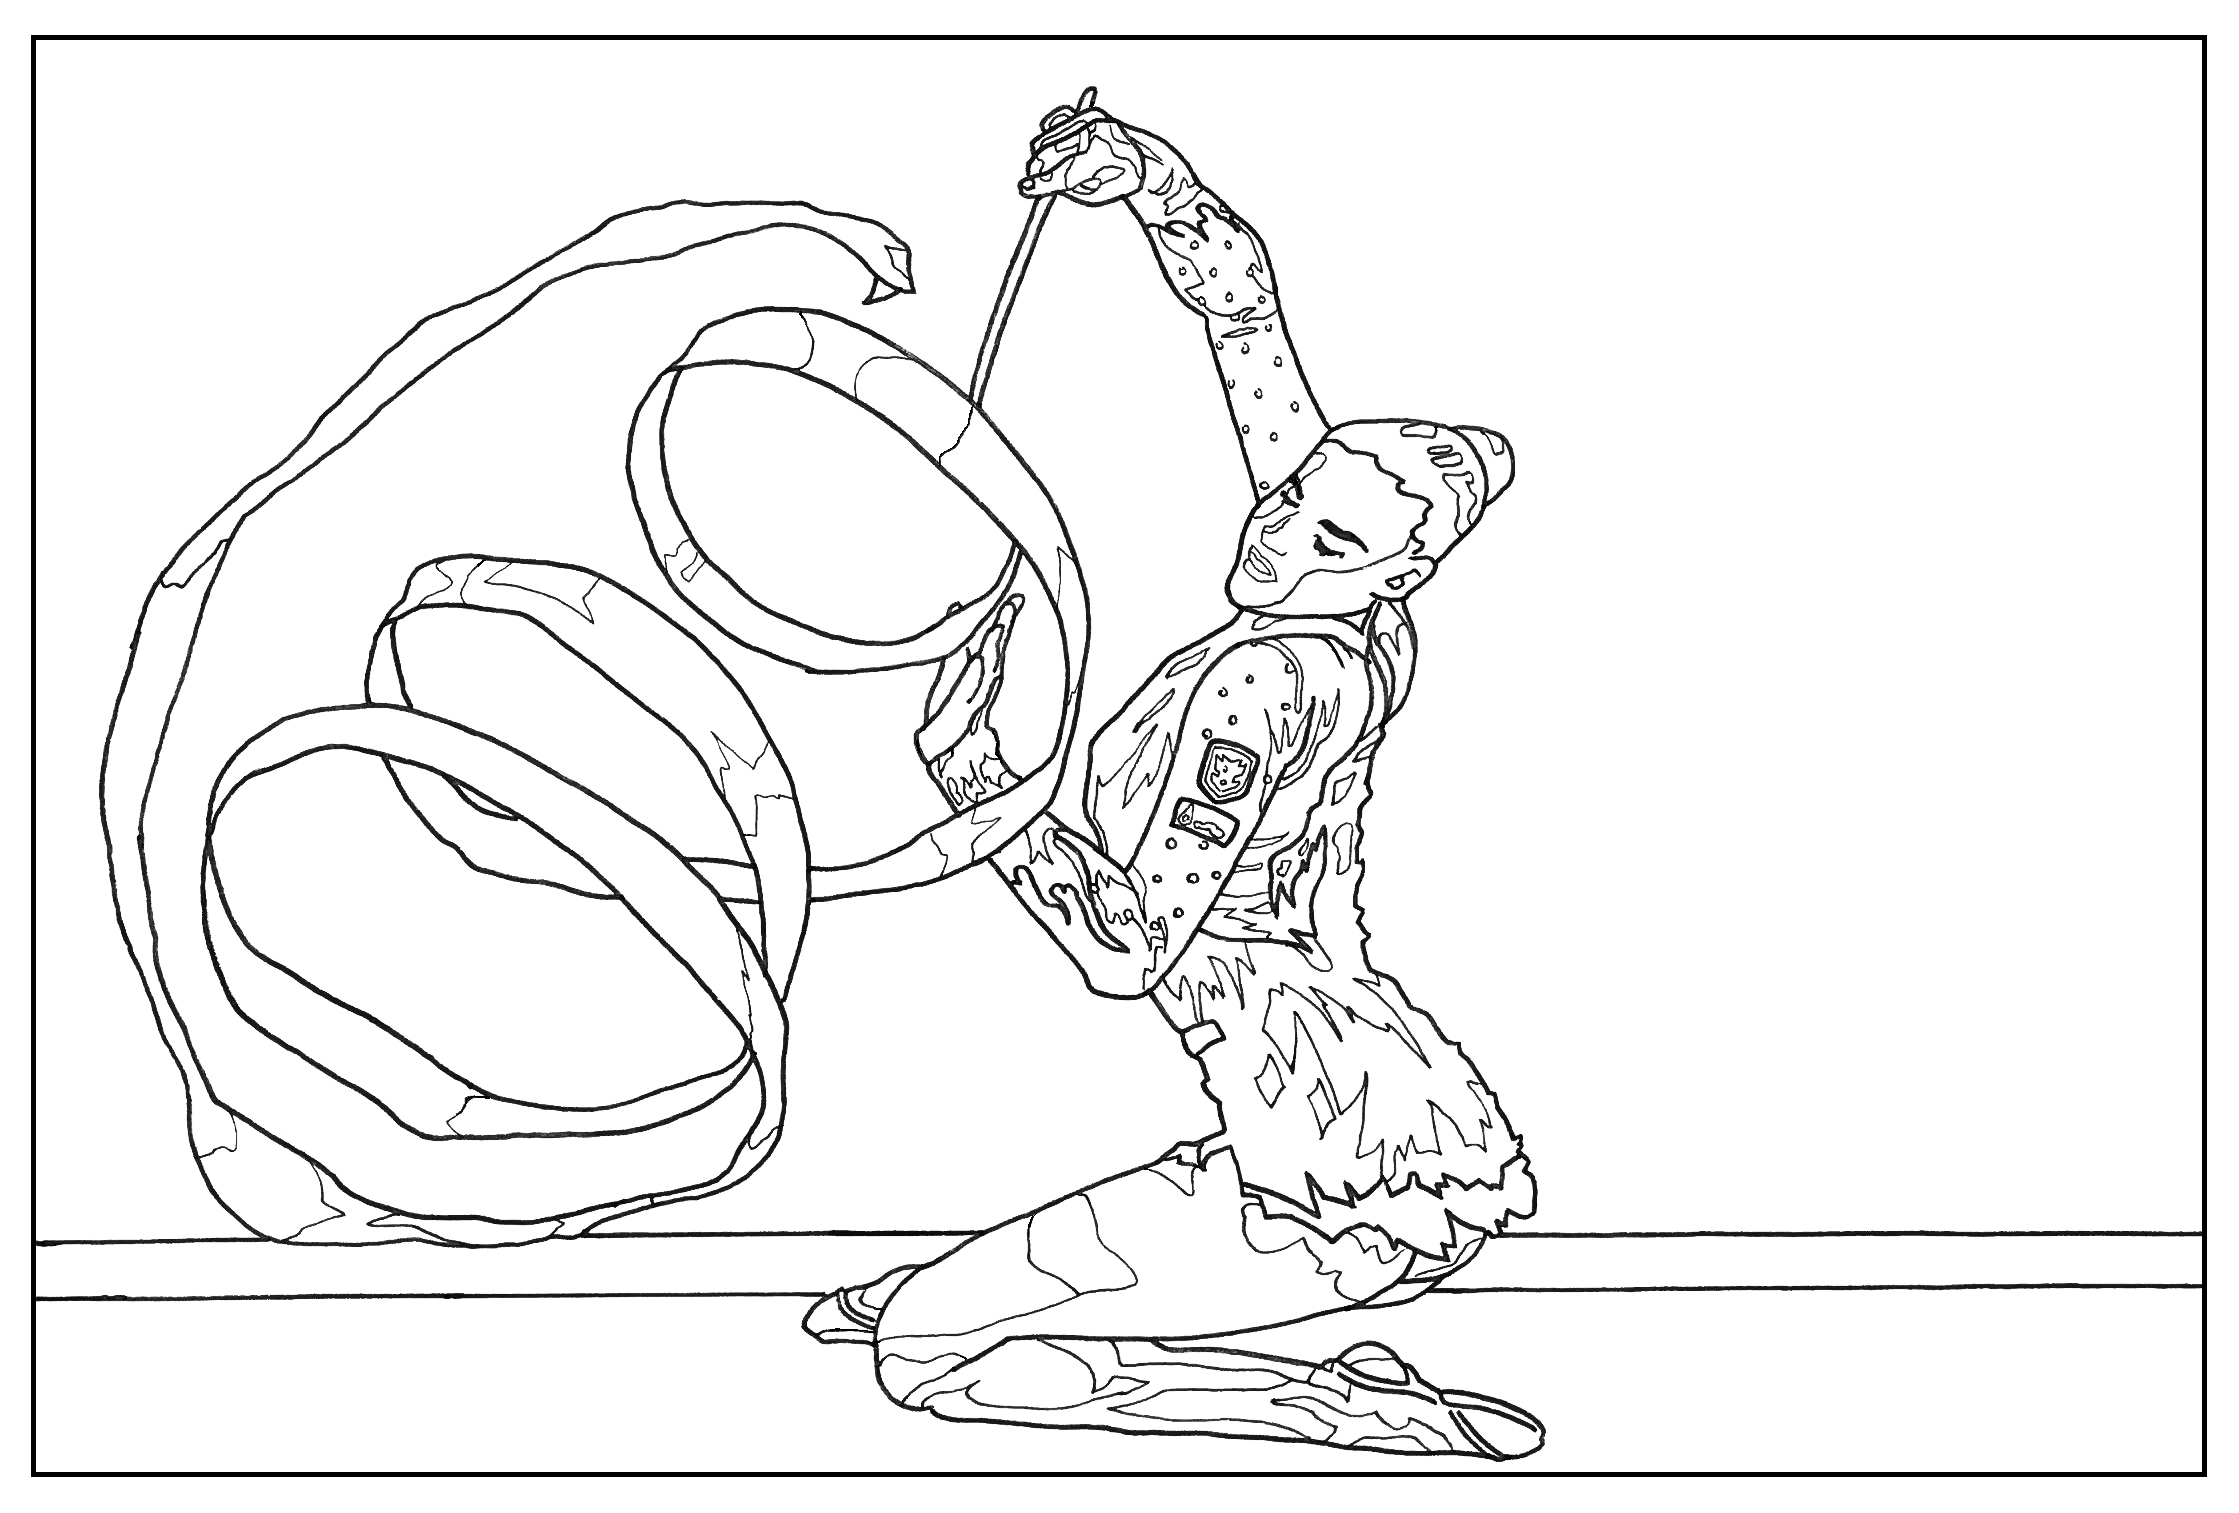 Sport gymnastic - Sport Coloring pages for kids to print & color